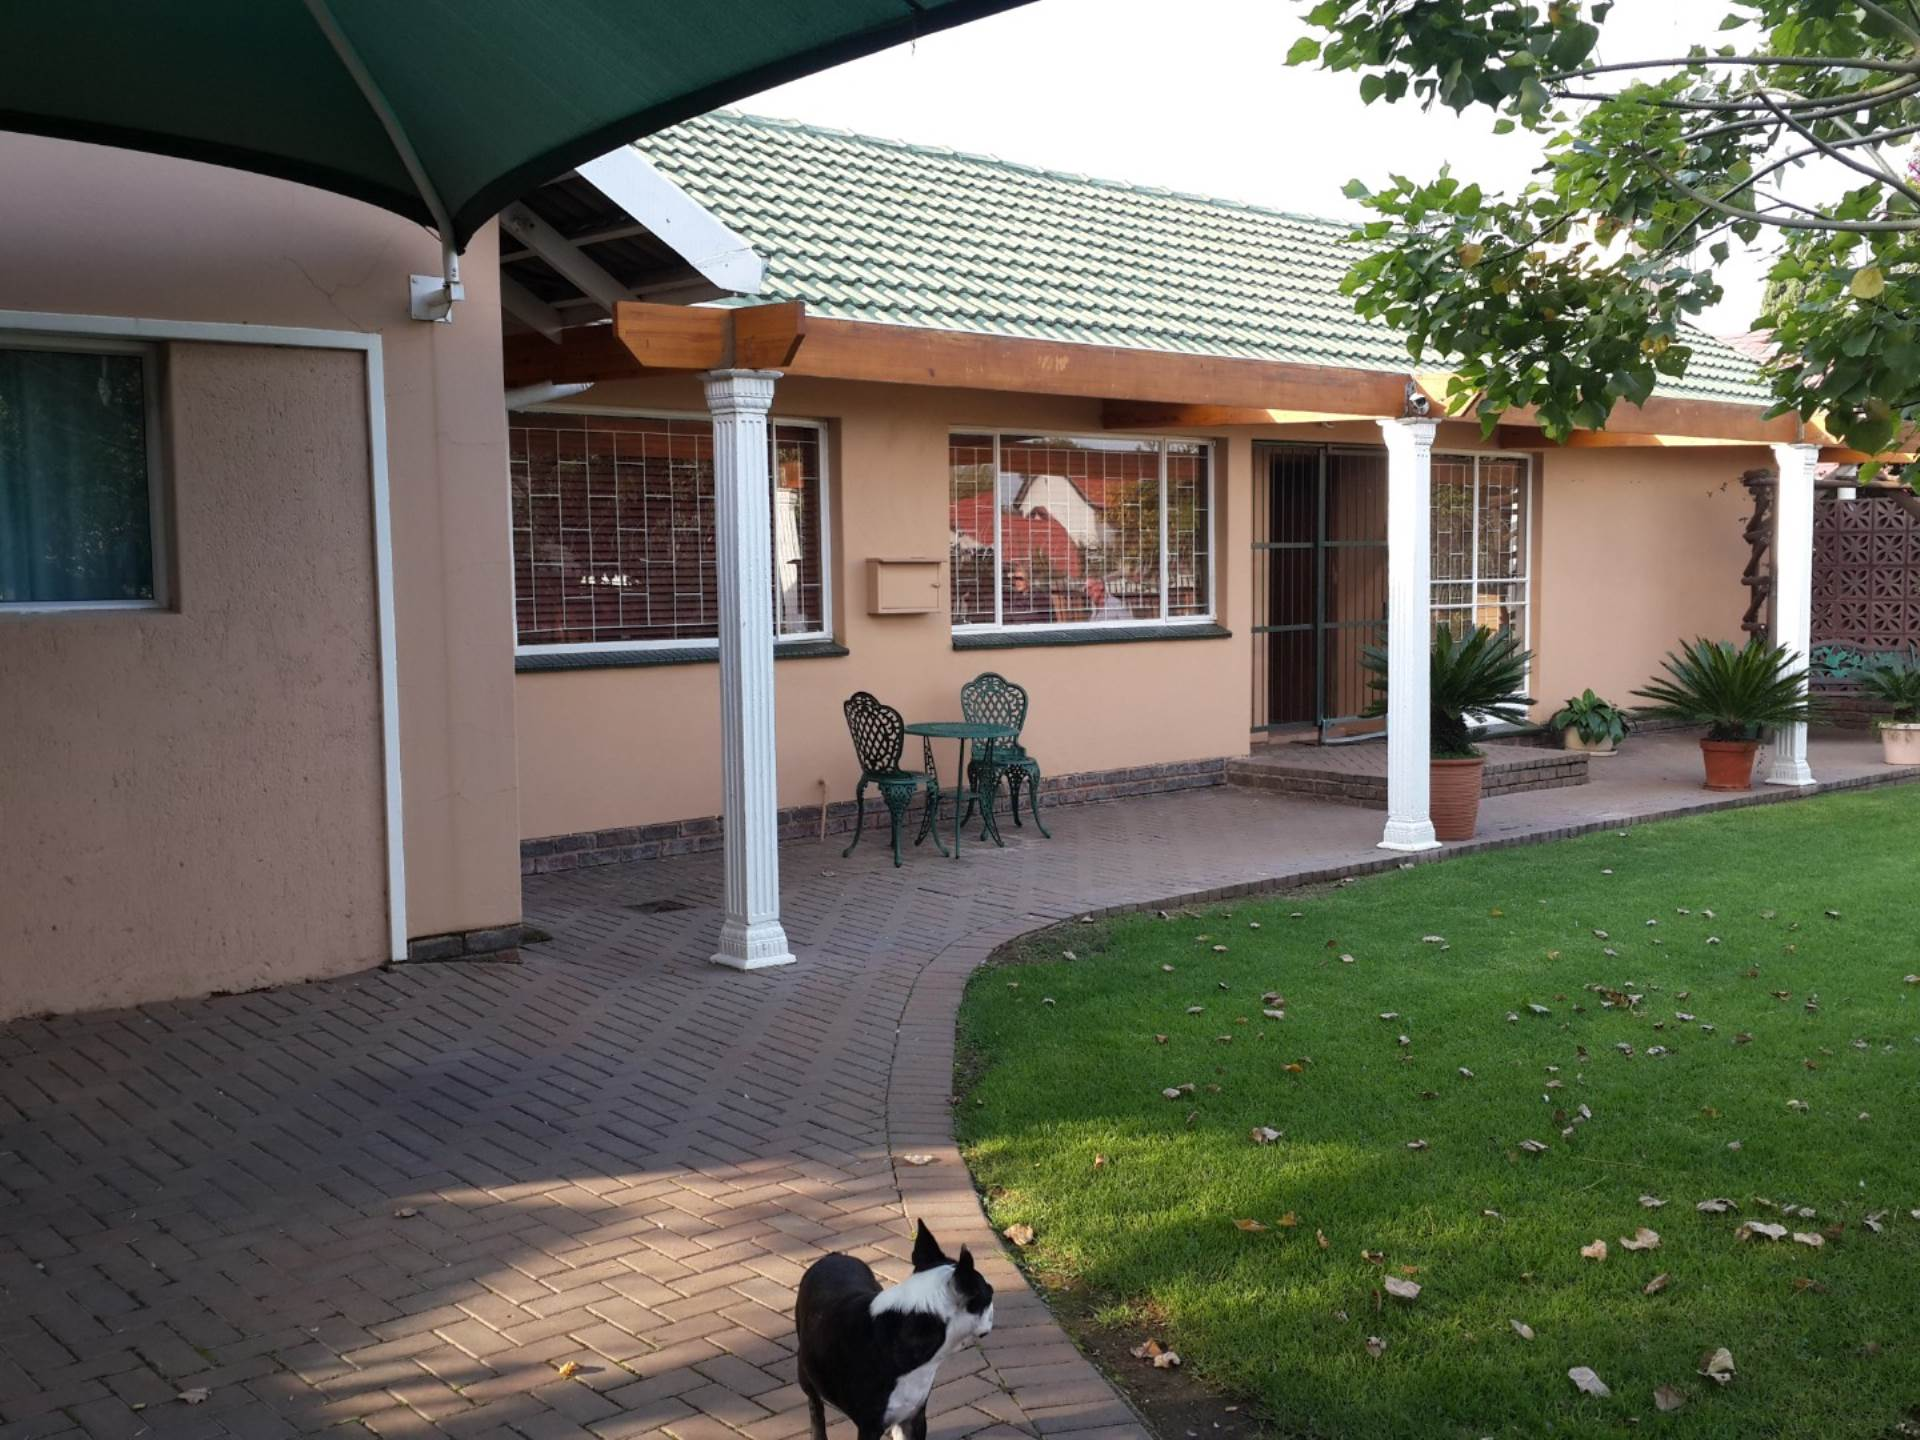 Property and Houses for sale in Doringkloof, House, 4 Bedrooms - ZAR 1,970,000